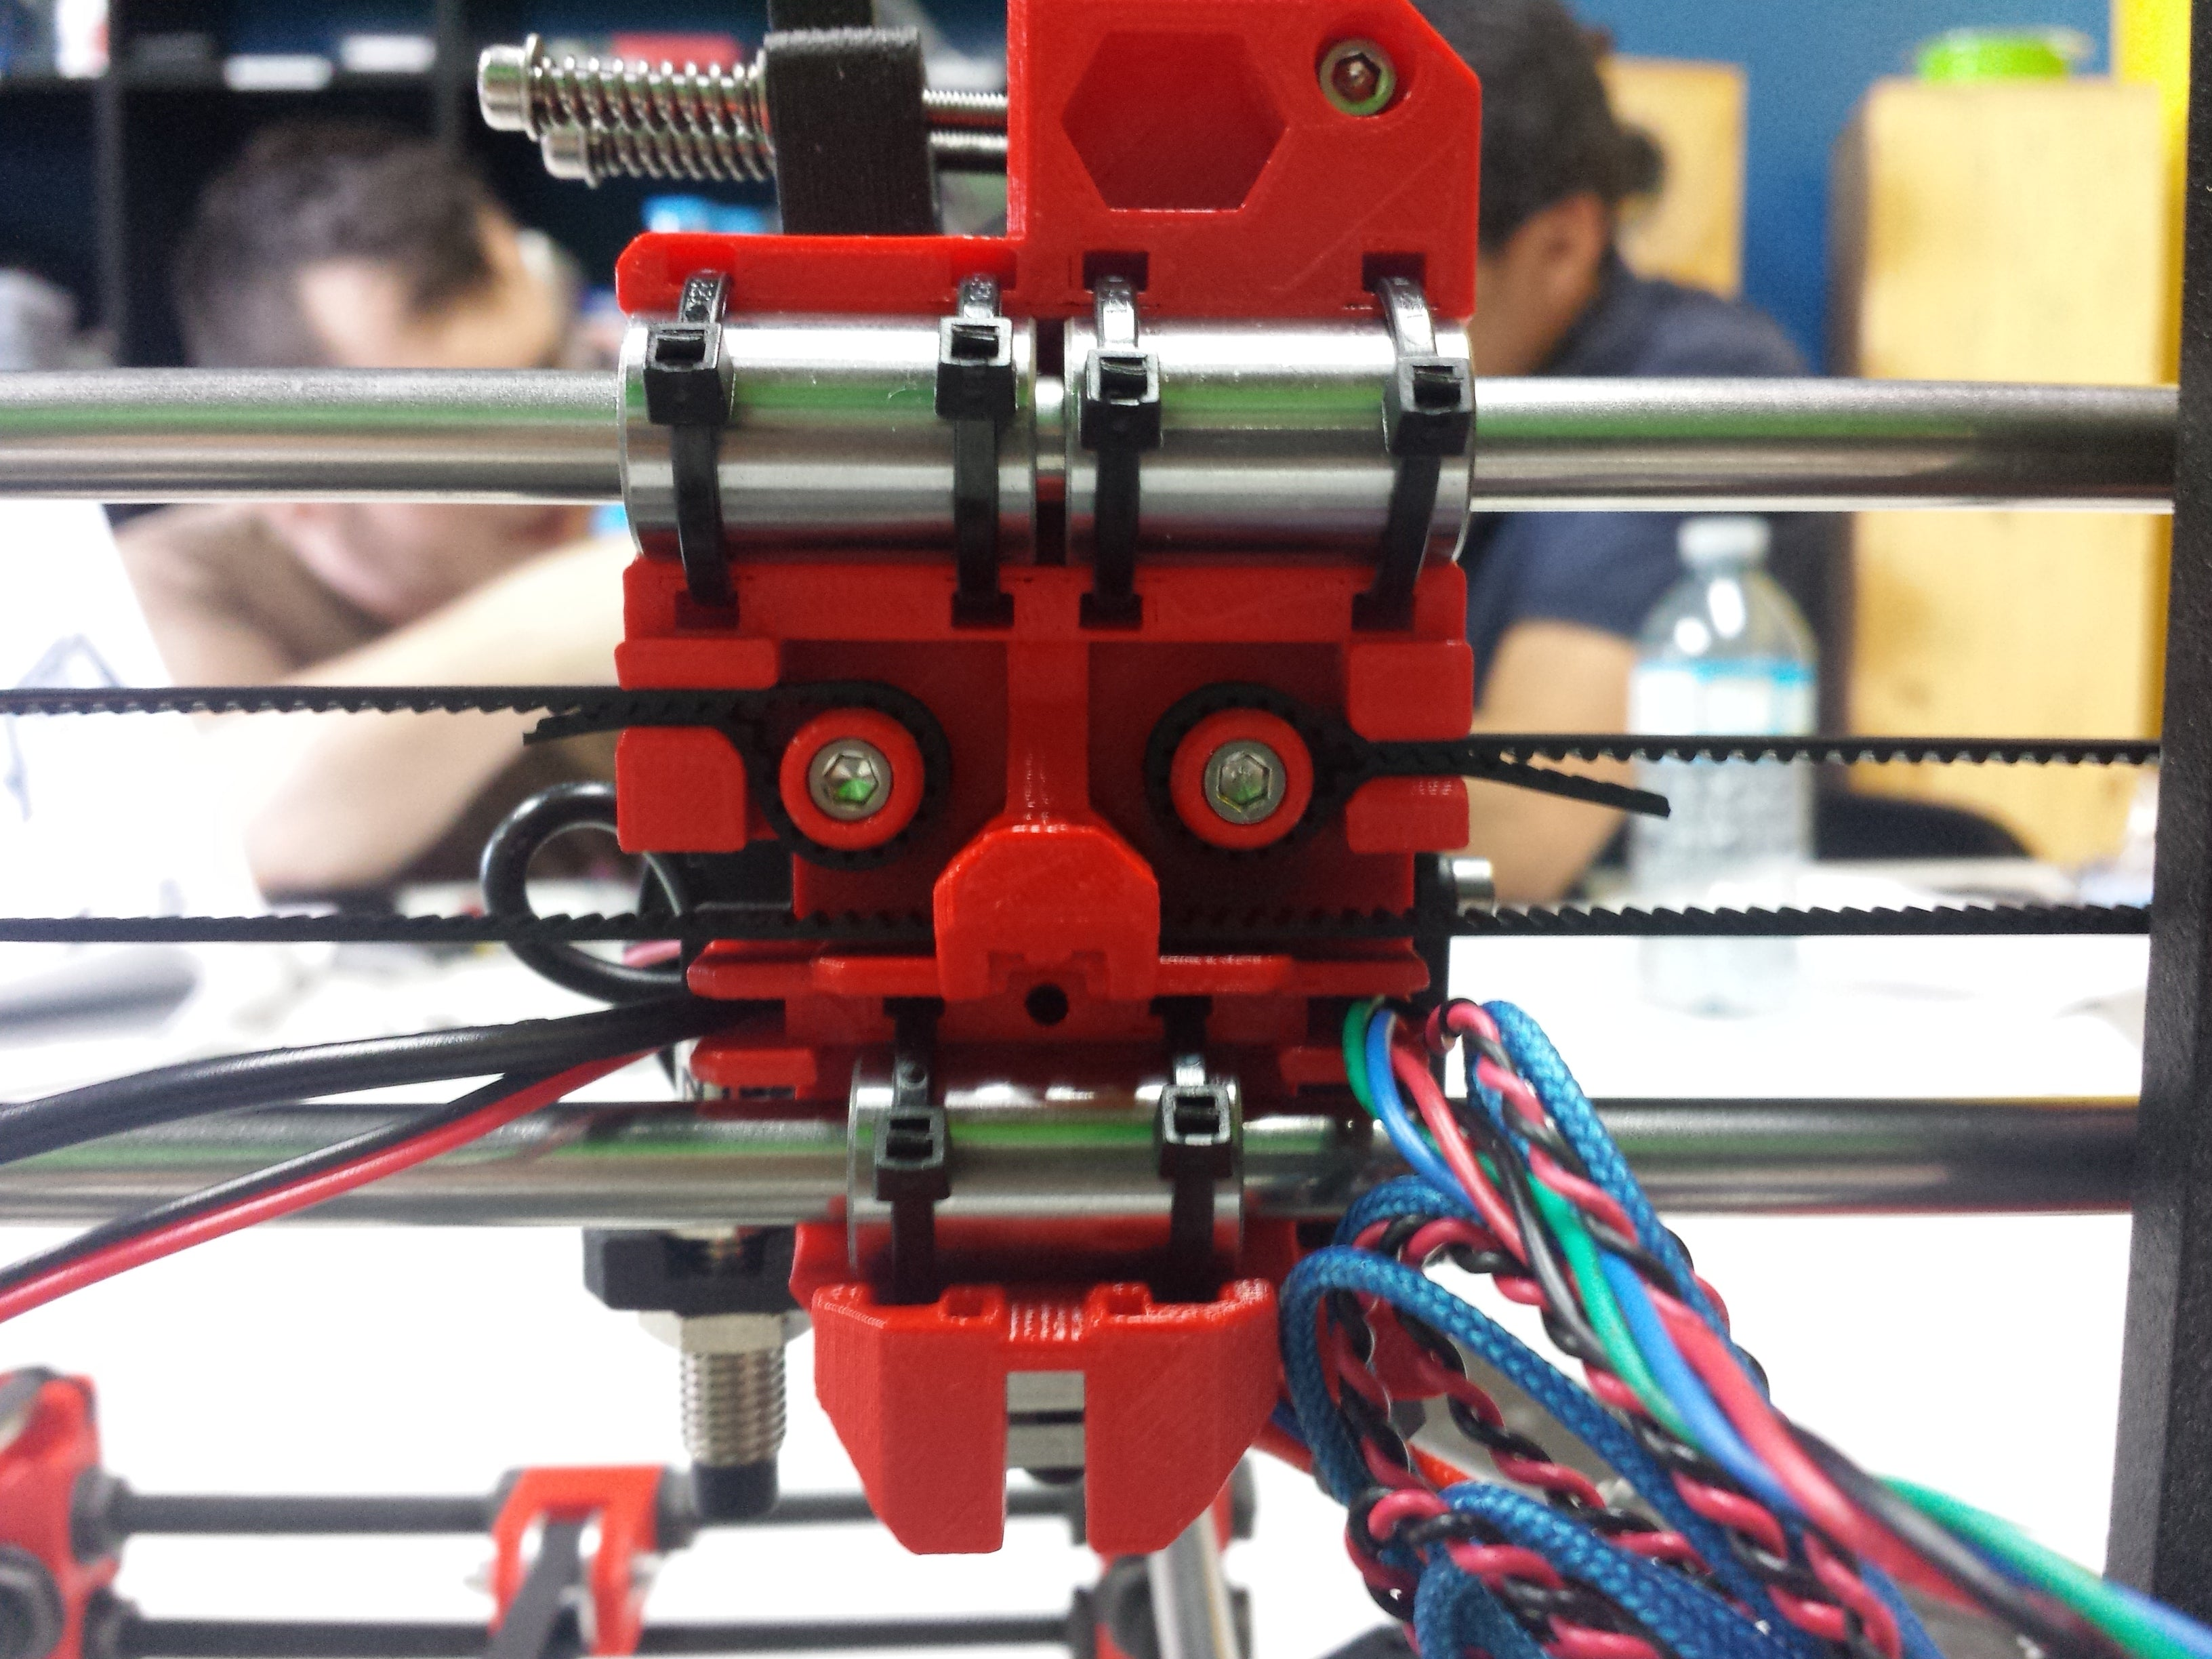 Picture of X-Carriage of Original Prusa i3 MK2 3D printer